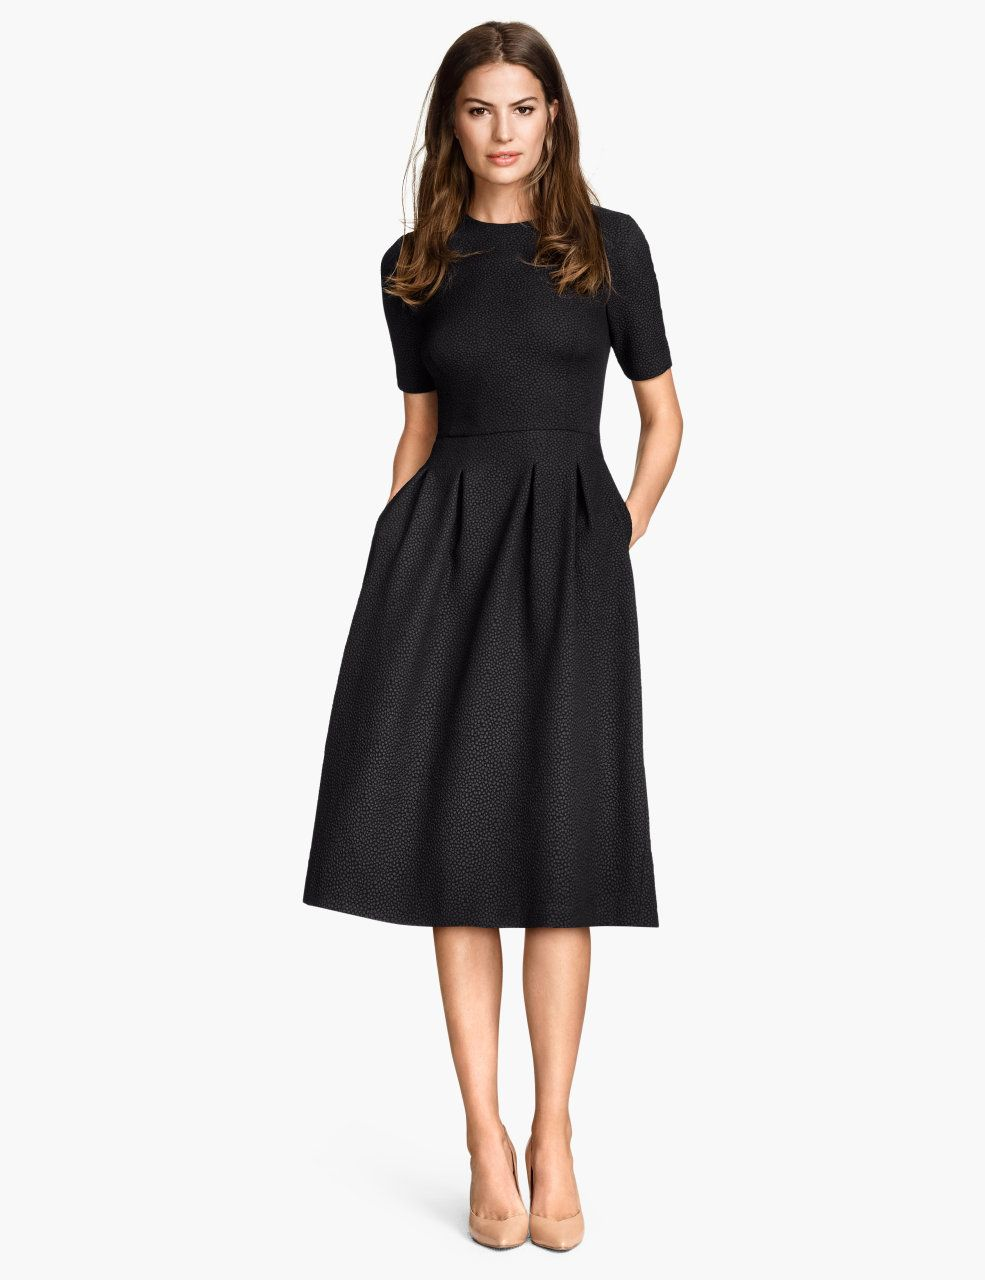 Check this out! Knee-length dress in textured jersey with short sleeves. Seam at waist, flared skirt with pleats at top, and concealed zip at back. Unlined. - Visit hm.com to see more.